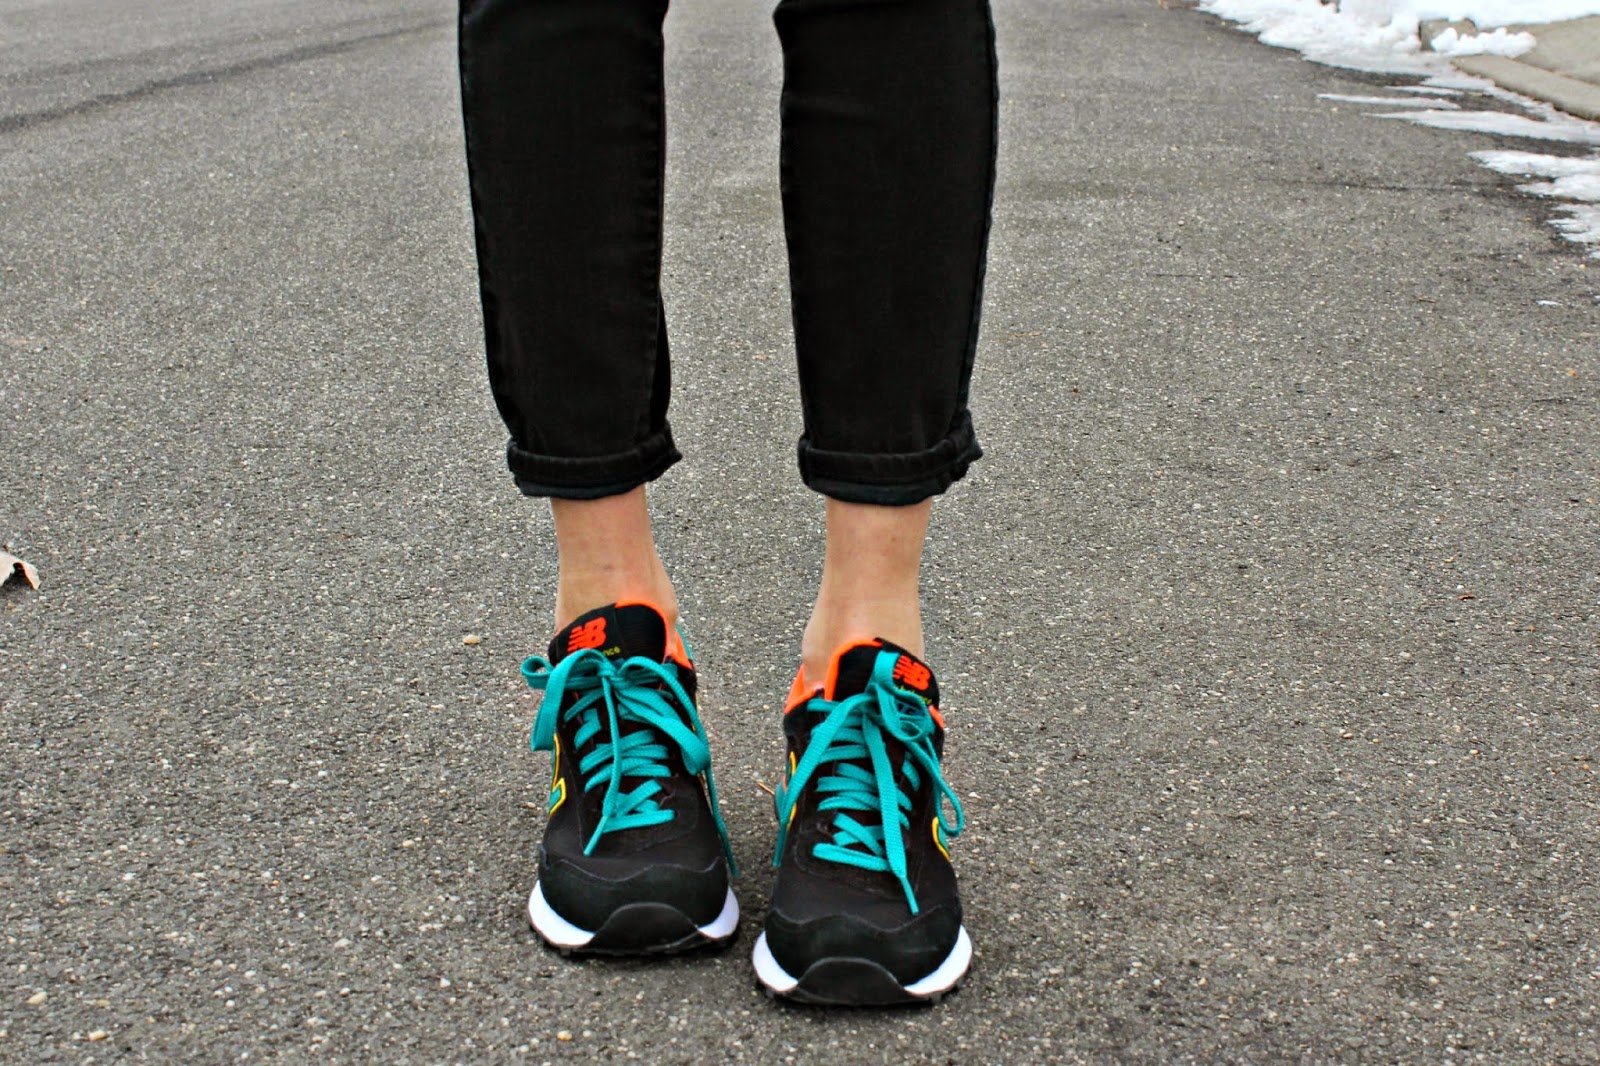 New Balance neon sneakers